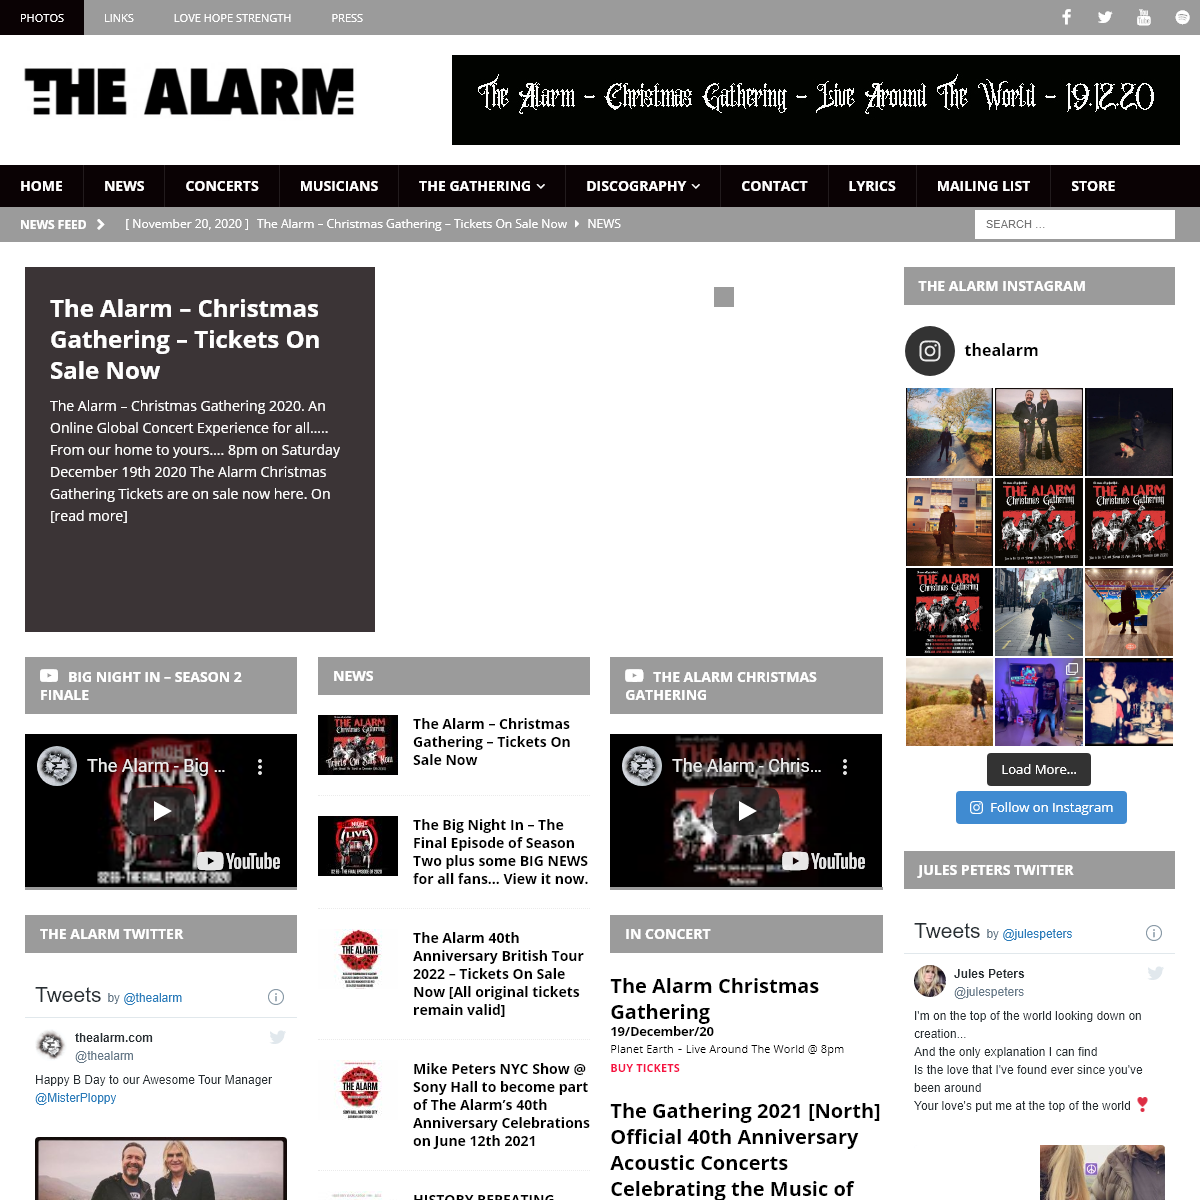 The Alarm – MUSIC WILL KEEP US STRONG